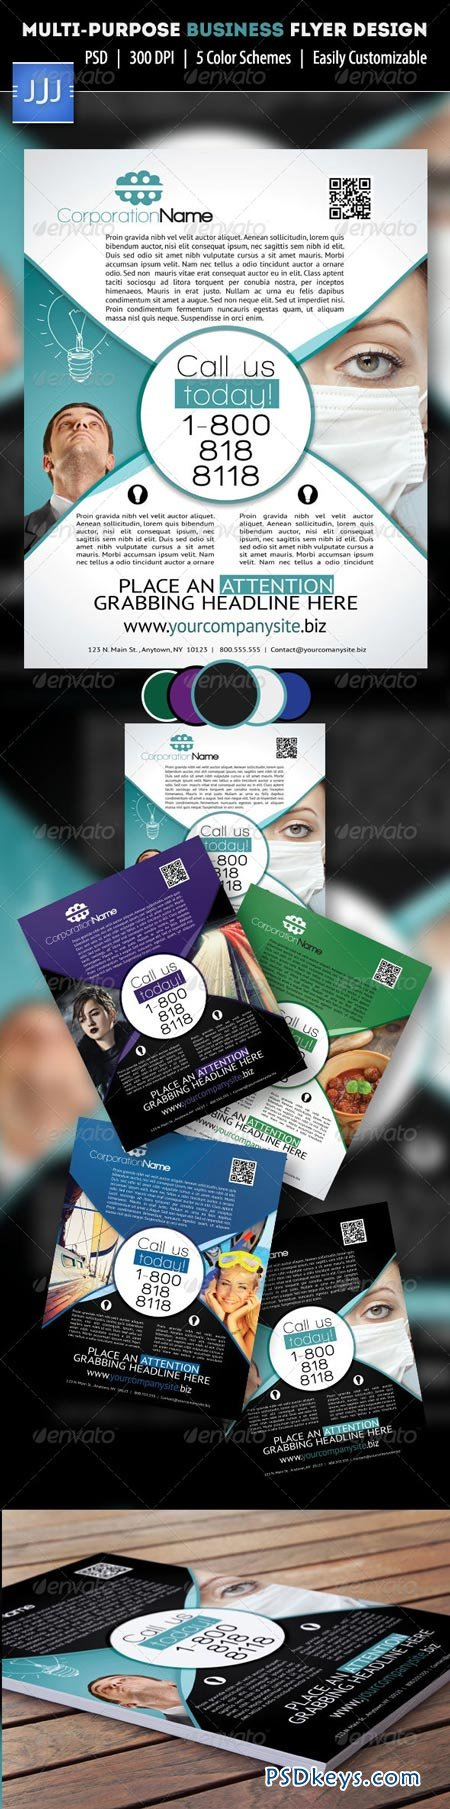 GraphicRiver Multipurpose Business Flyer 2